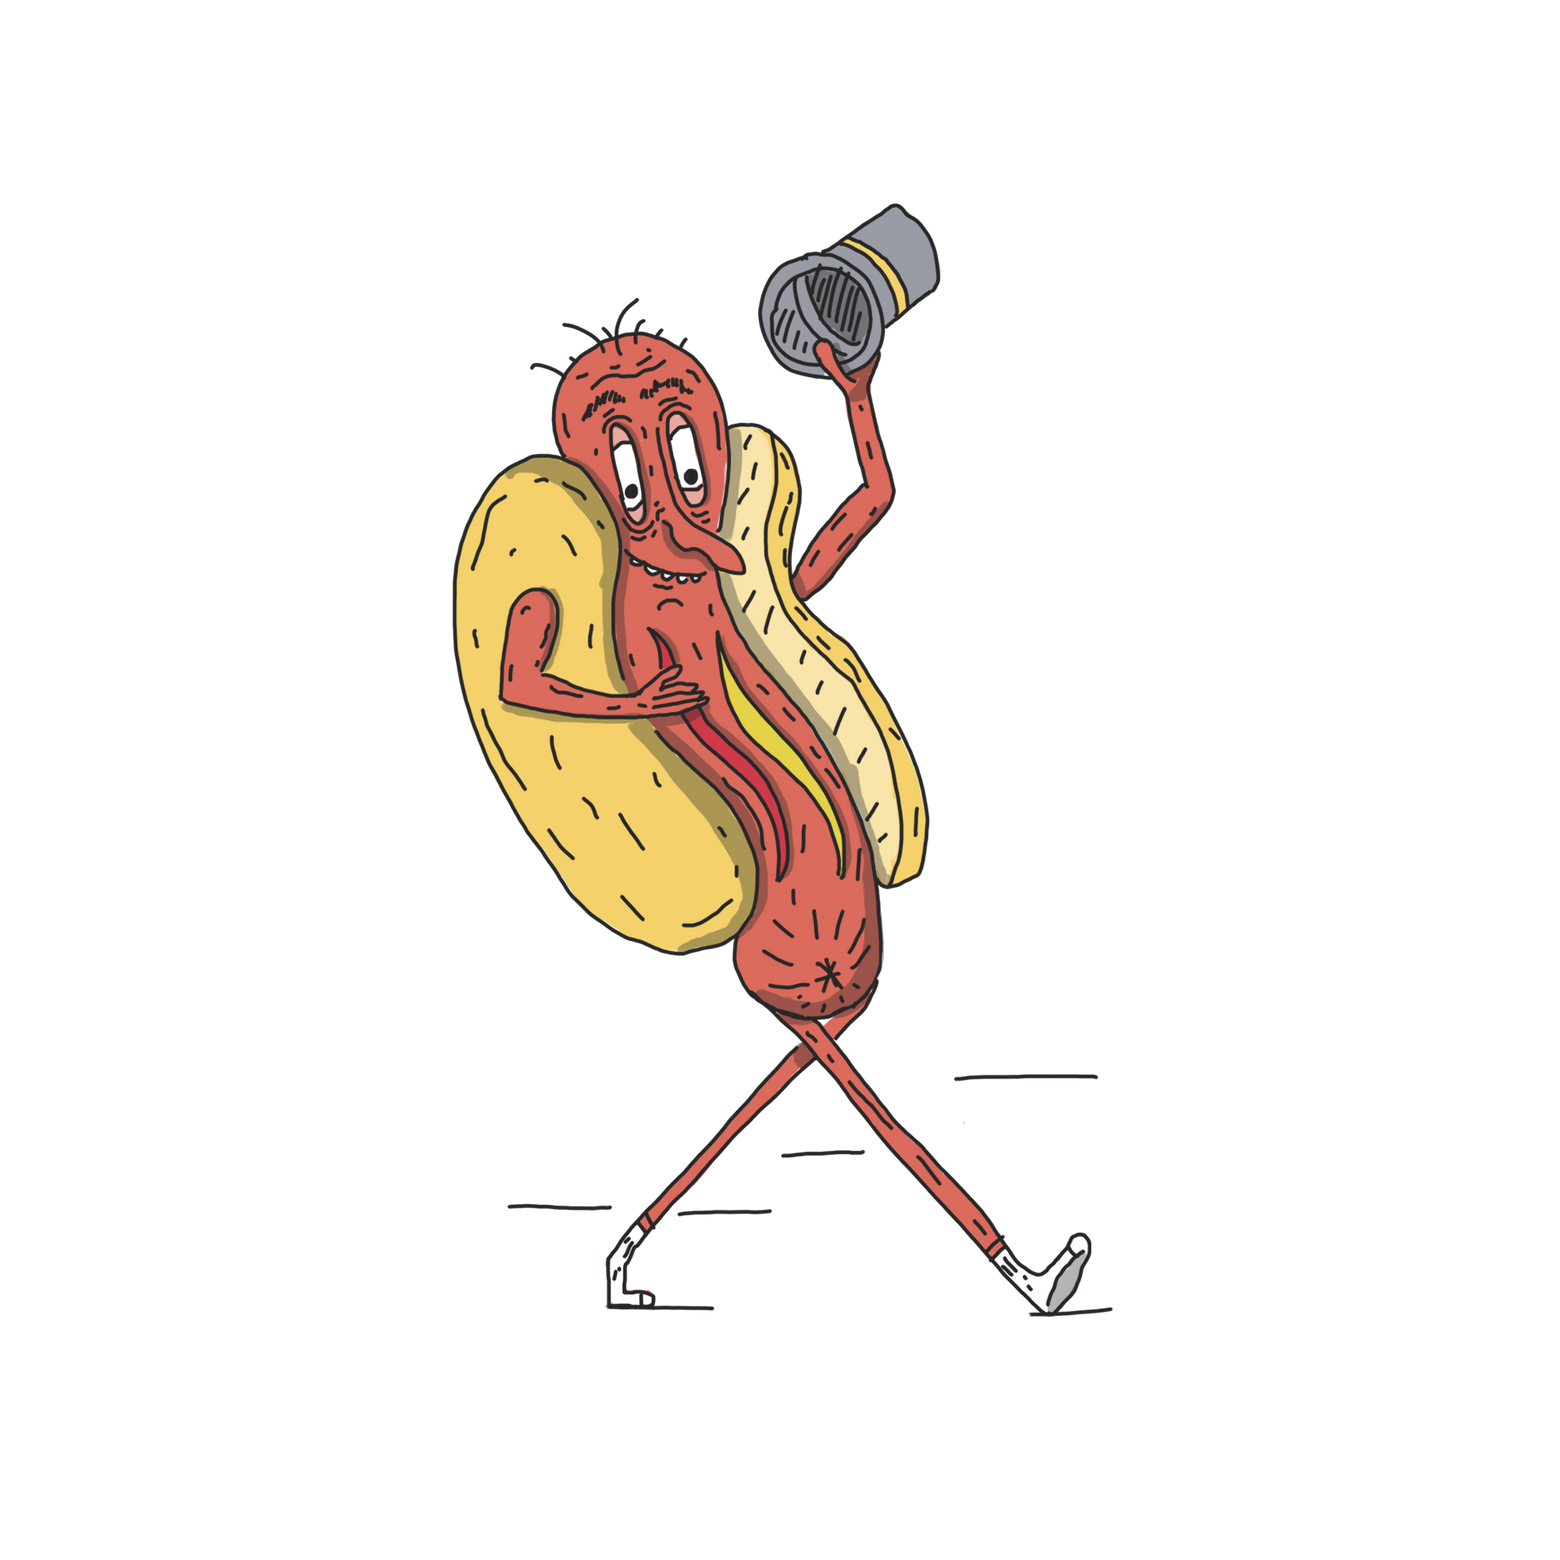 boringfriends